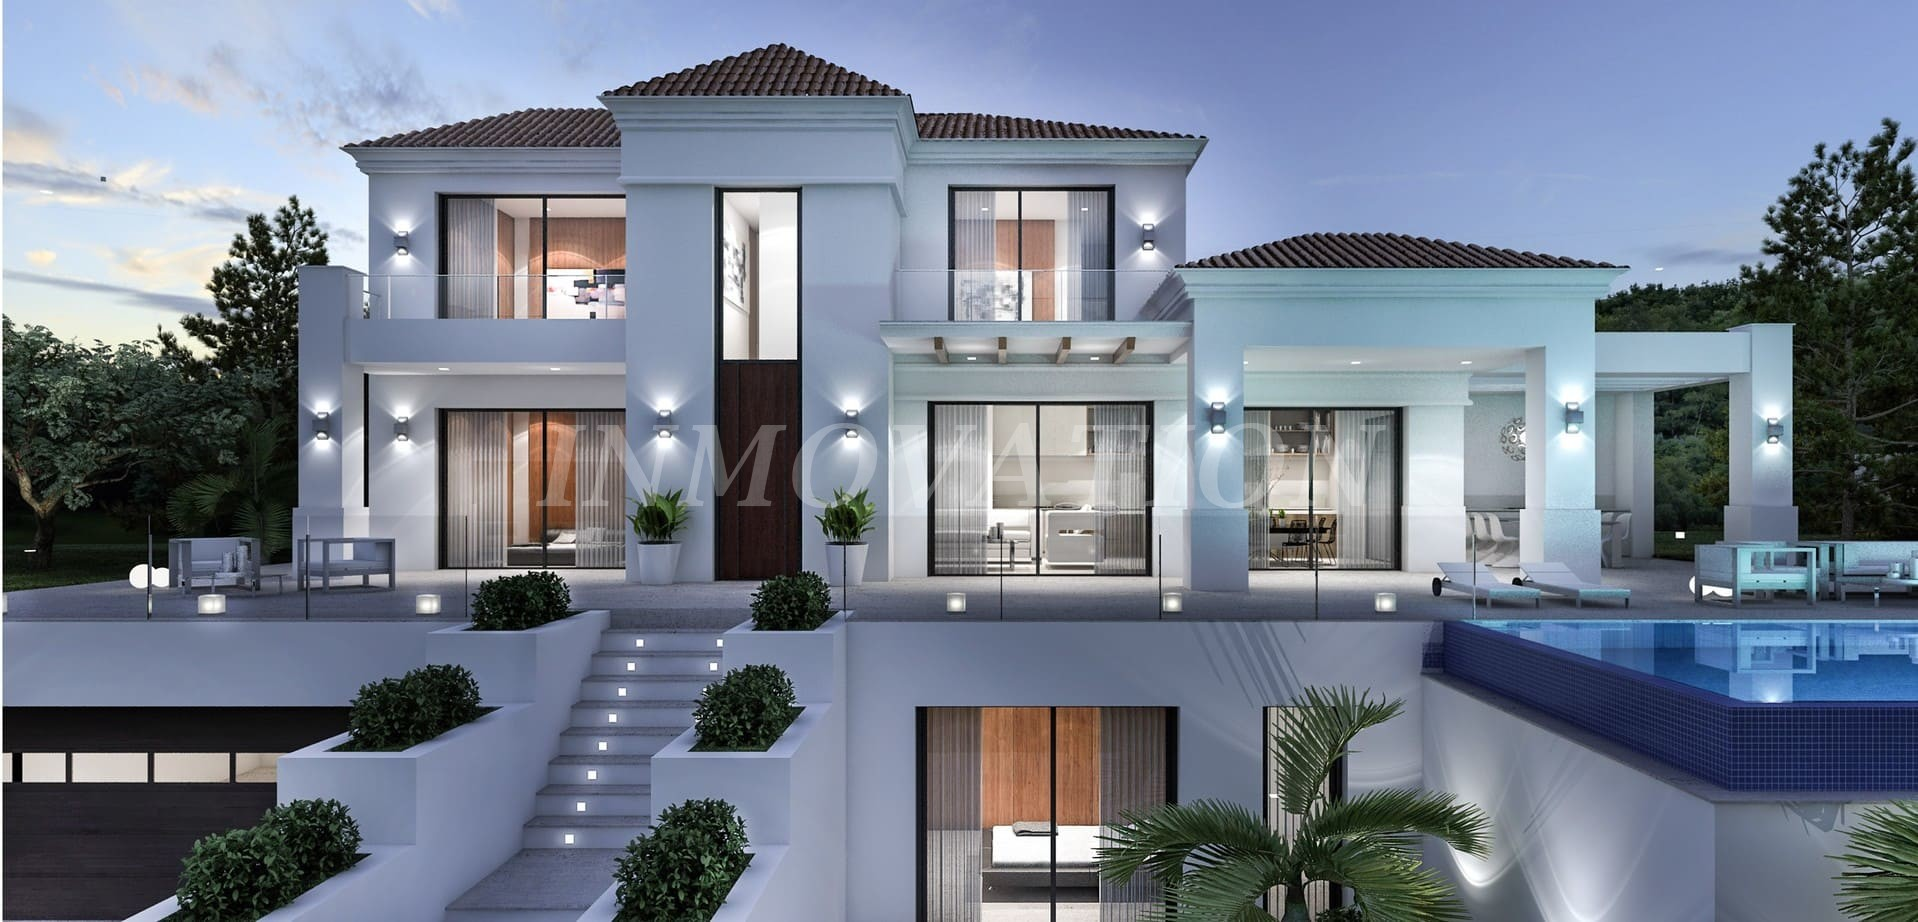 New Build Traditional Style Villa in Javea